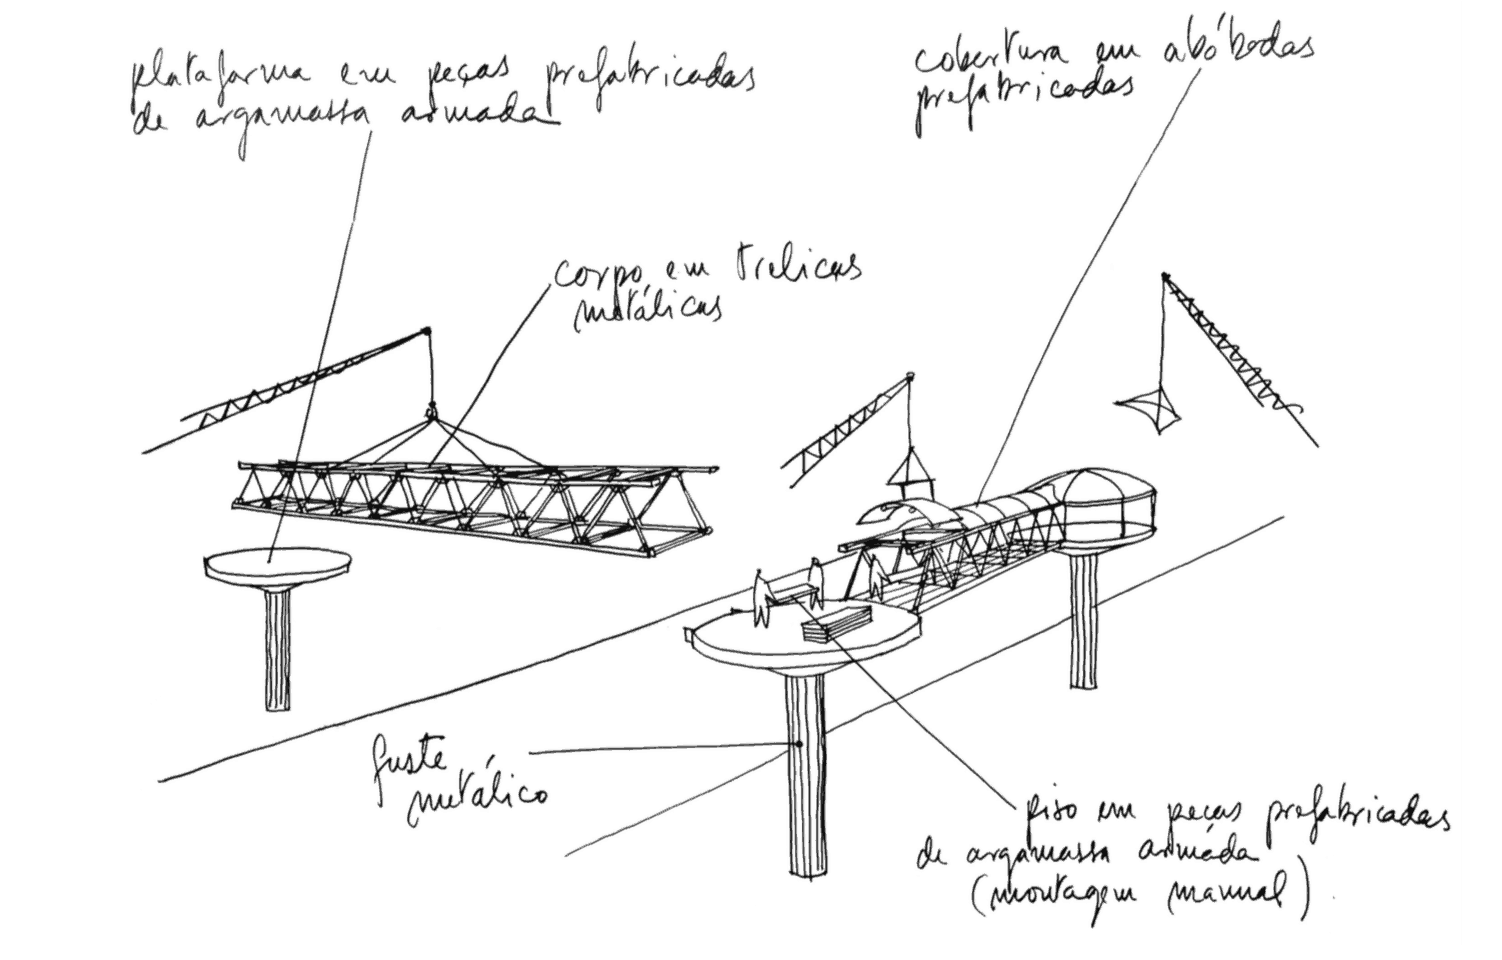 Assembly process. Industrialized footbridge, Brazil. Design and drawing by Lelé, 1987. JFL Archives